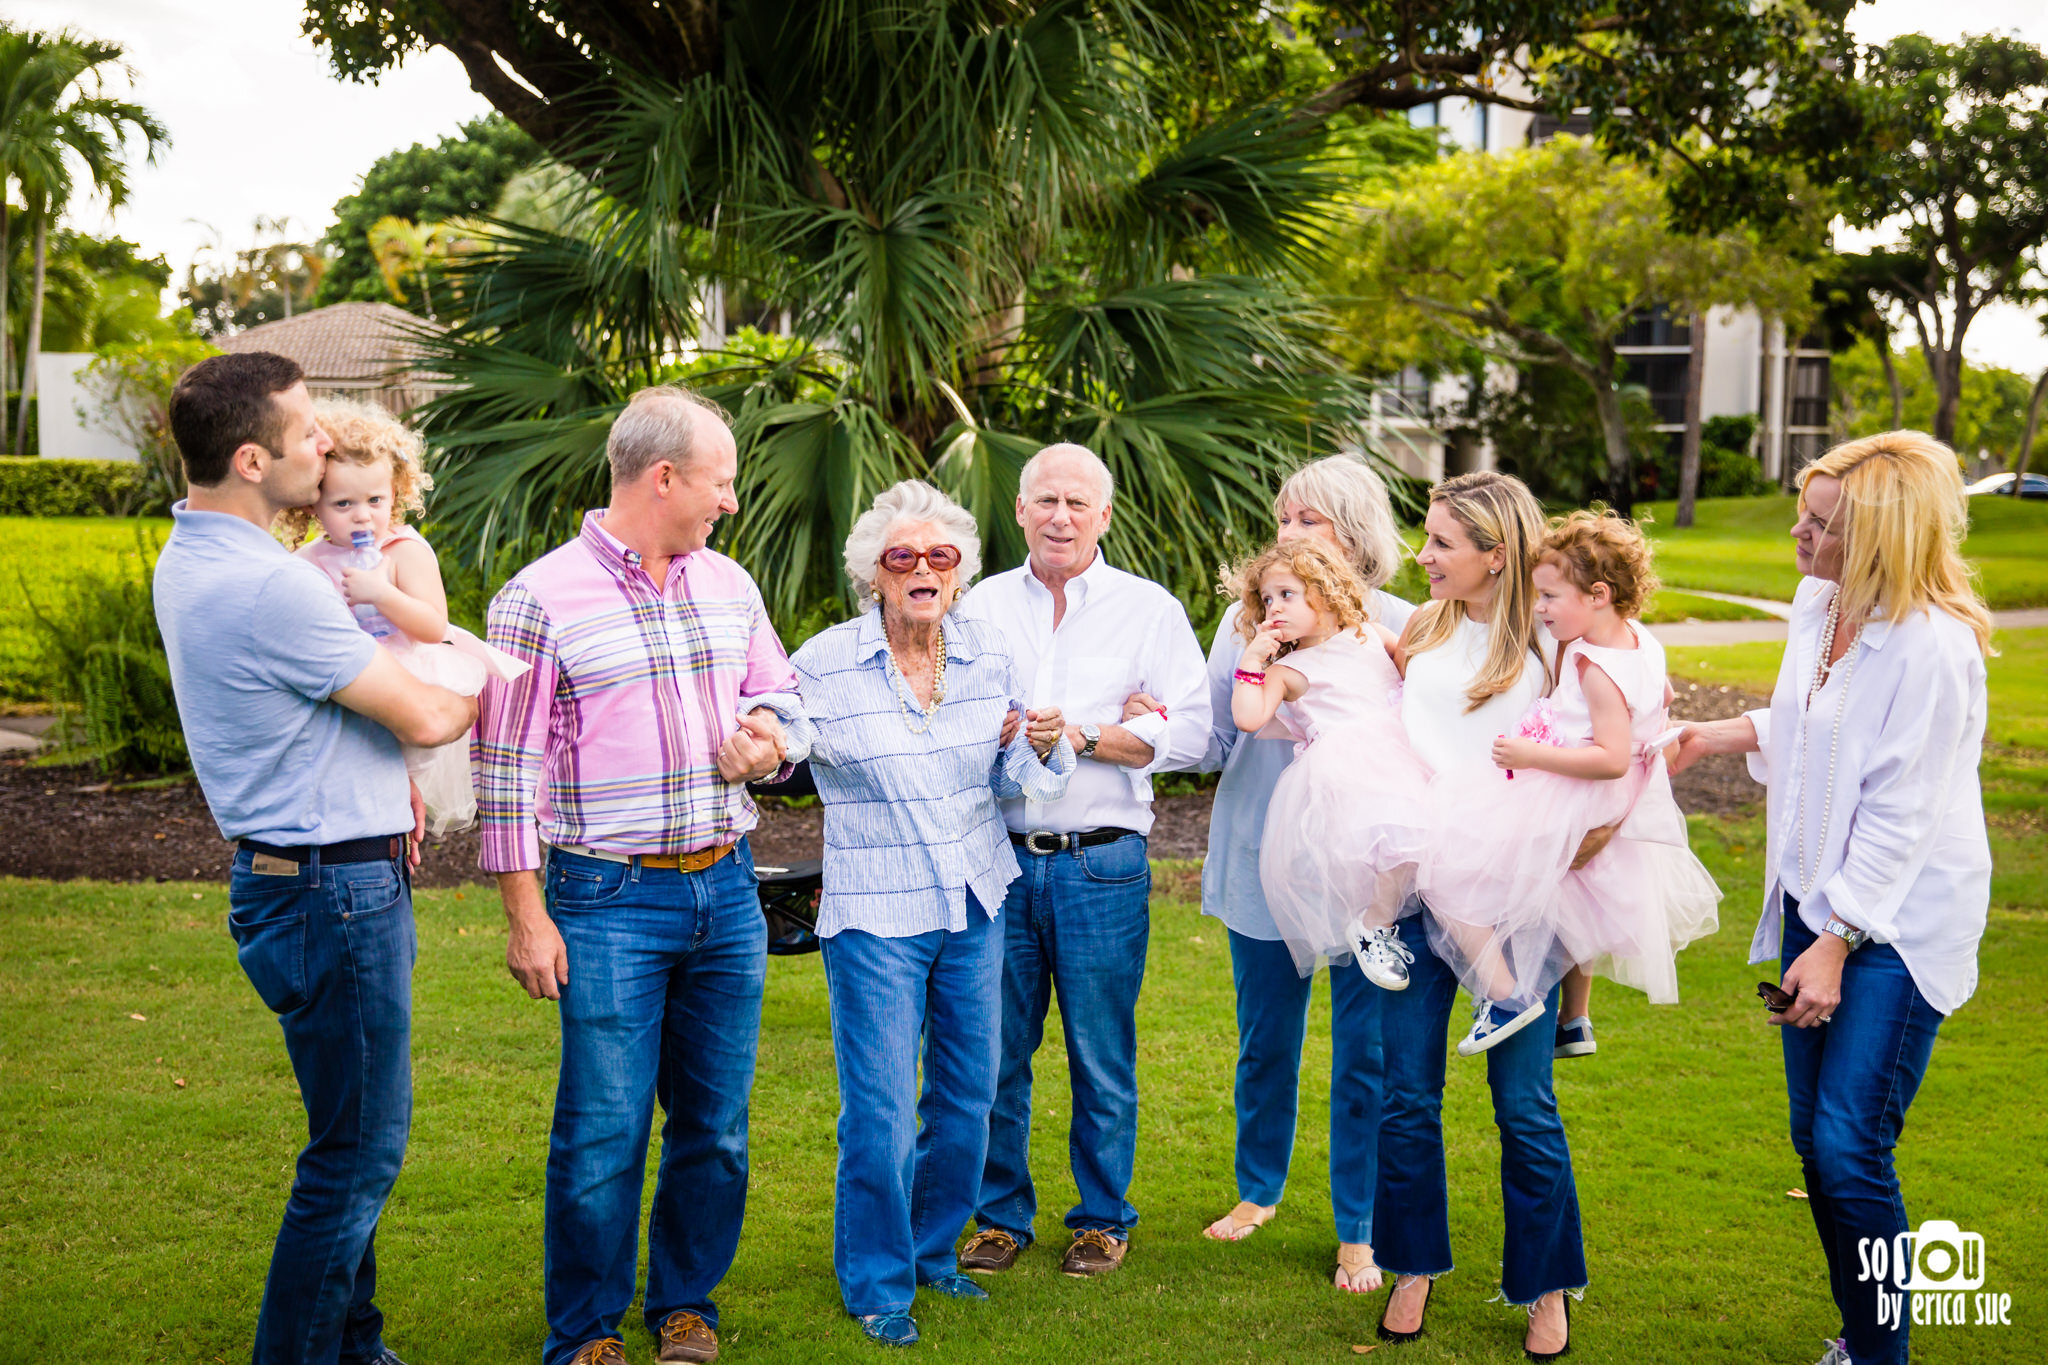 so-you-by-erica-sue-south-florida-extended-family-lifestyle-photo-session-2304.JPG